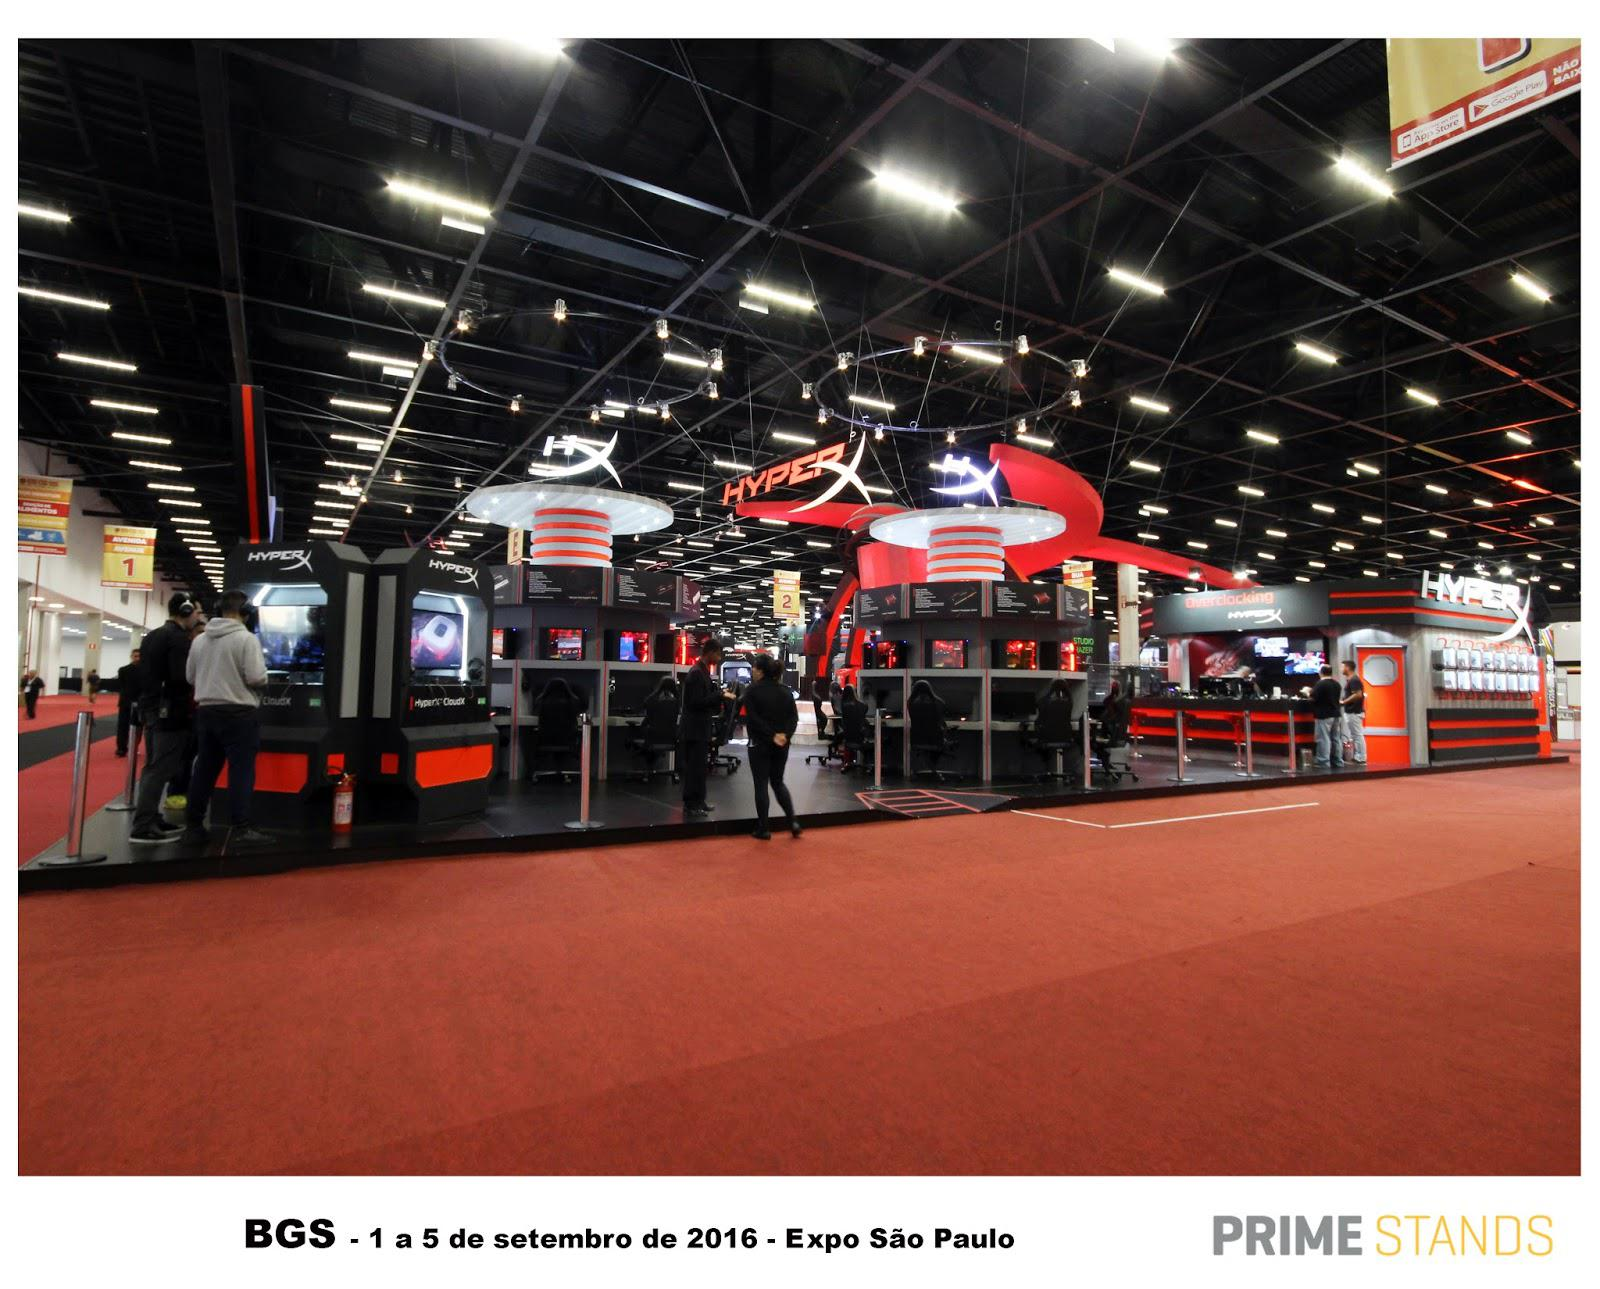 Expo Exhibition Stands Quiz : Brasil game show prime stands